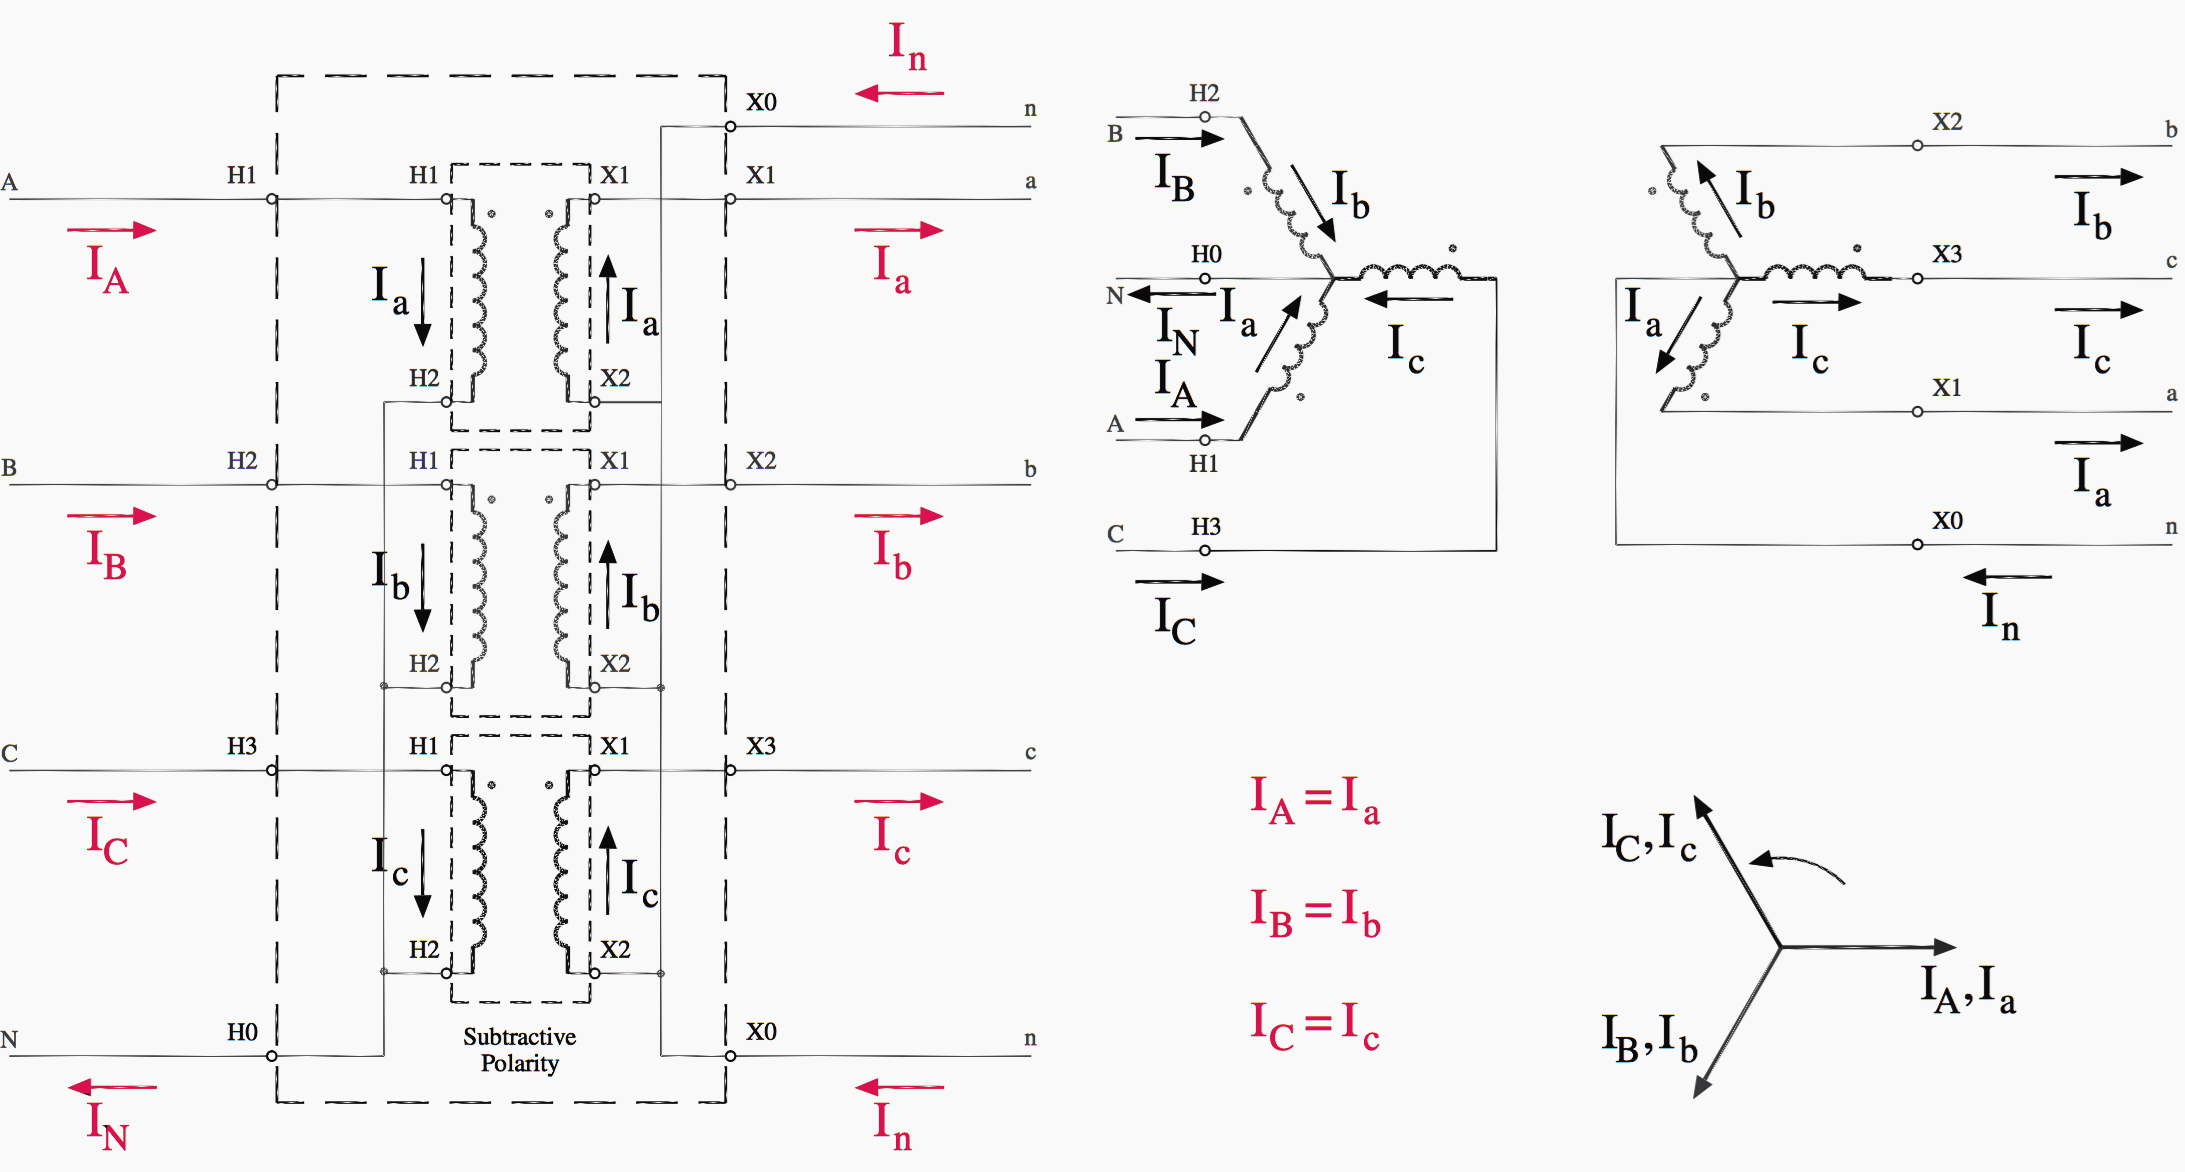 3 phase autotransformer wiring diagram 6 chromosomes crossing over easy understanding of transformer connections delta wye